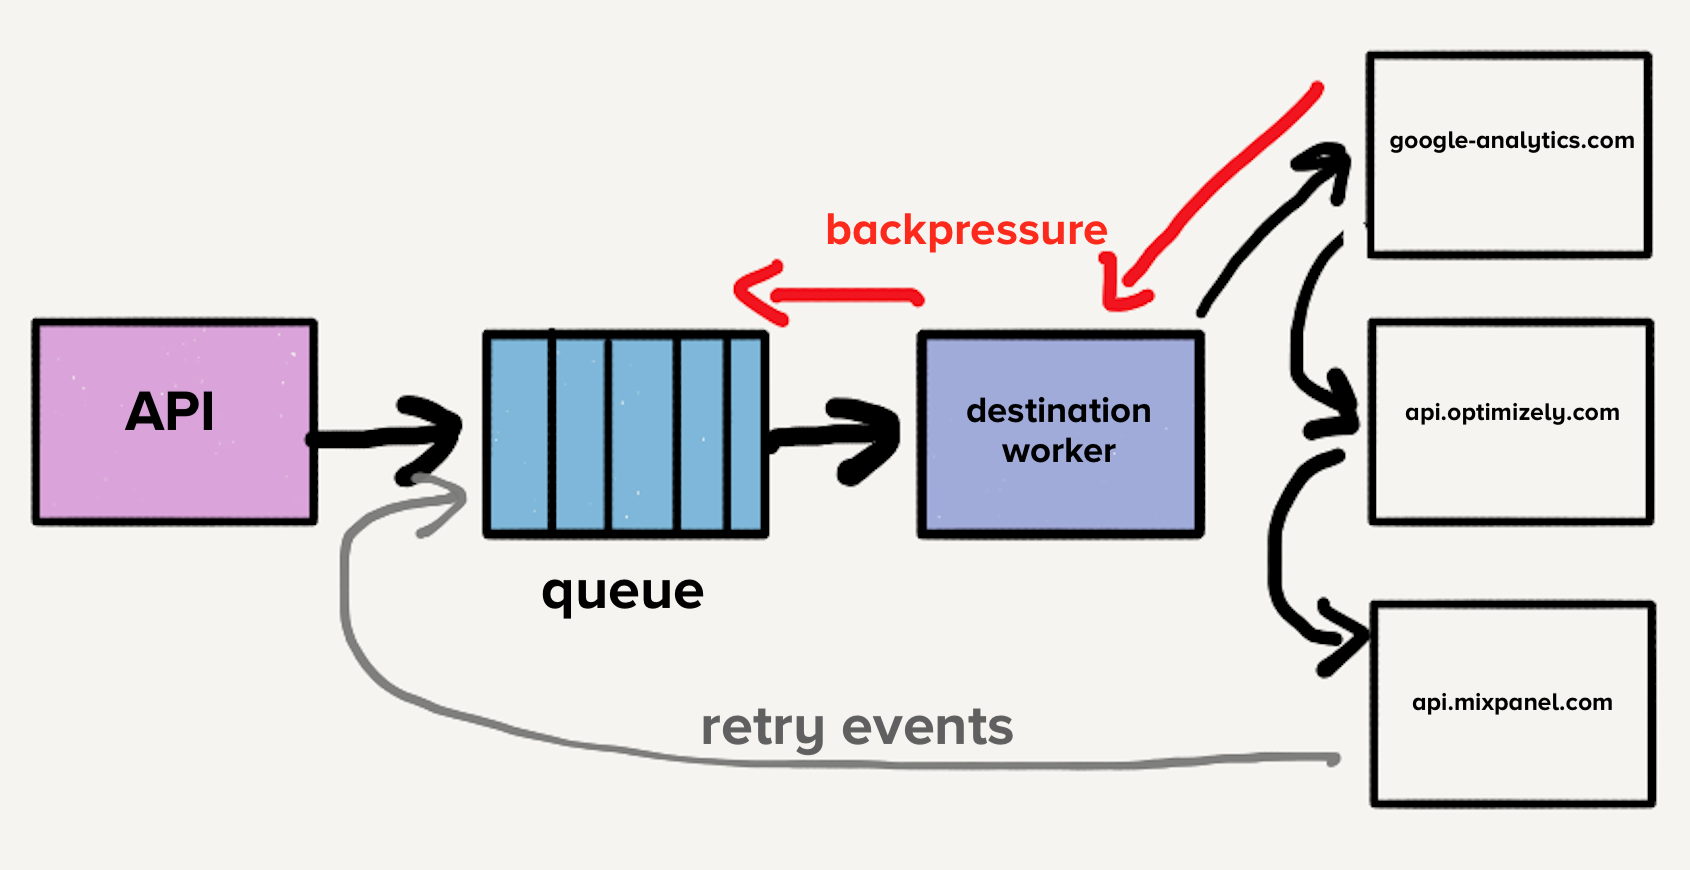 Goodbye Microservices: From 100s of problem children to 1 superstar